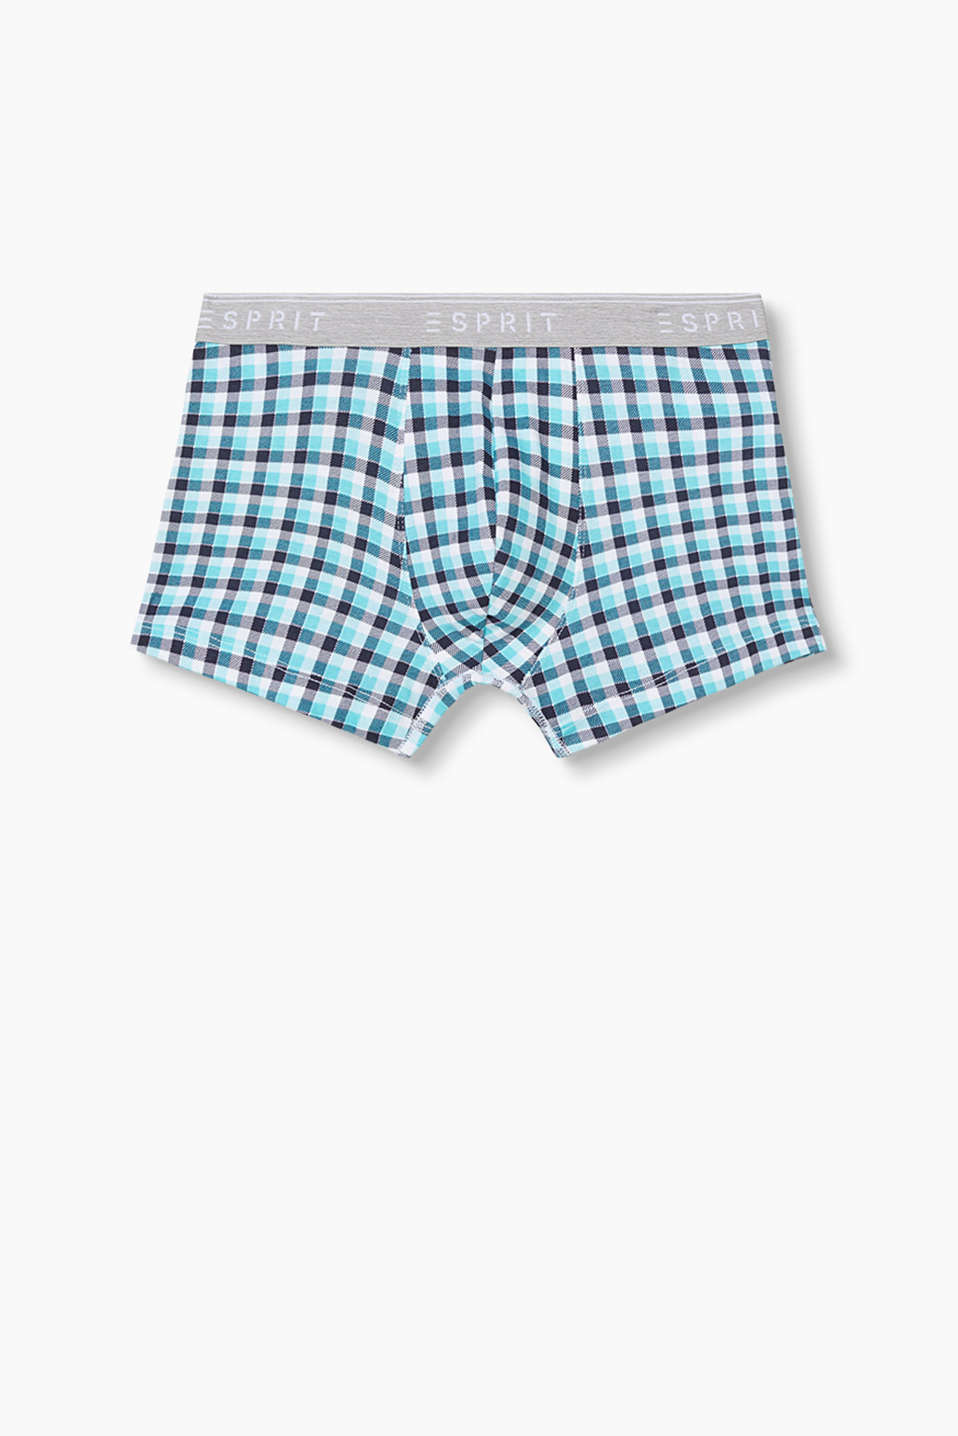 with a stunning plaid pattern and logo waistband